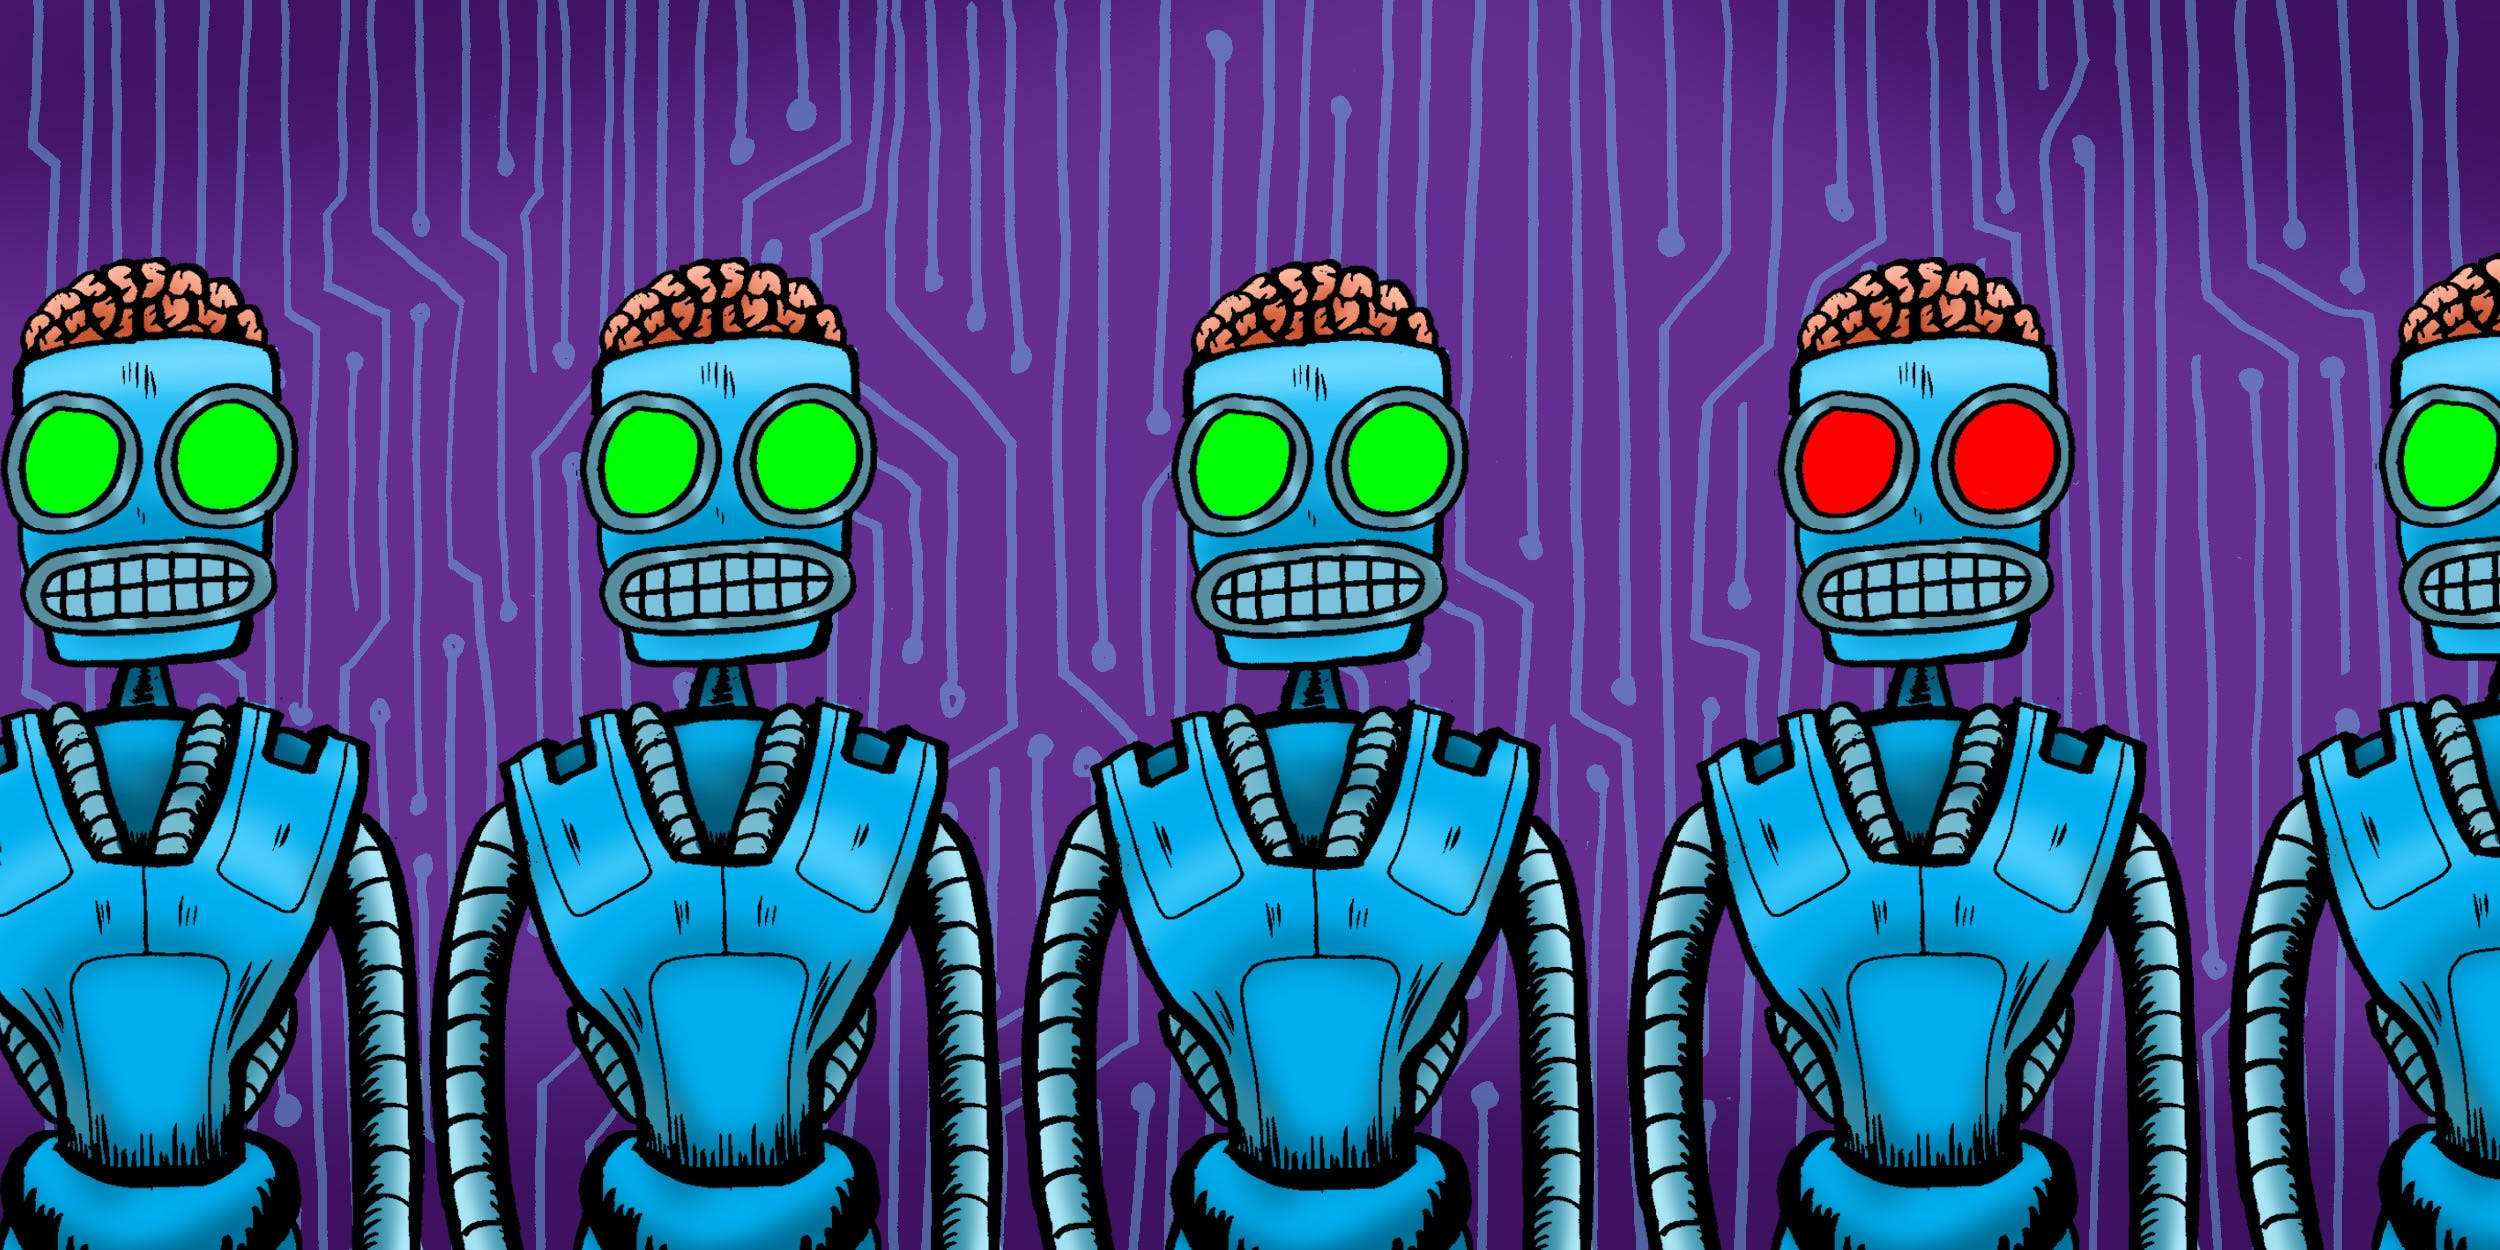 A line of identical robots with one having evil eyes